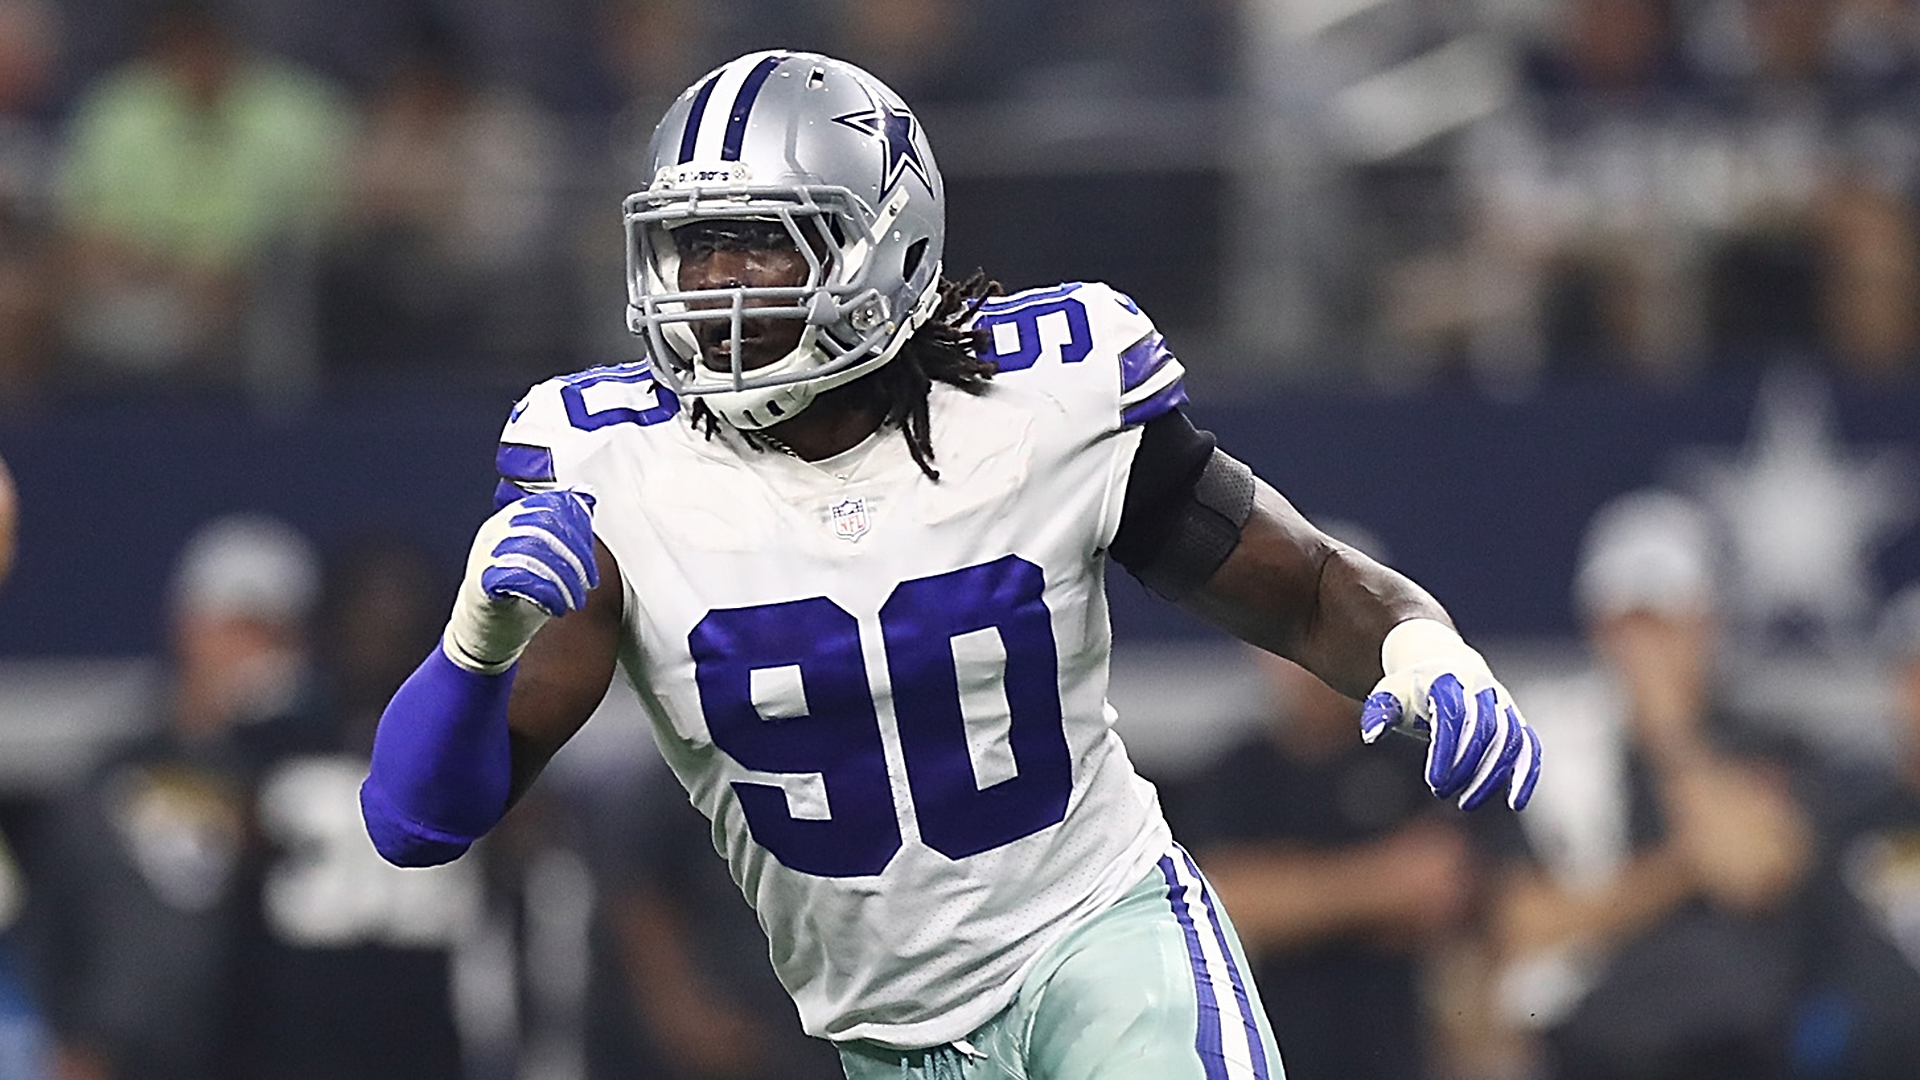 DeMarcus Lawrence says 'suck it up' to Giants fans upset over snubbed kid's autograph